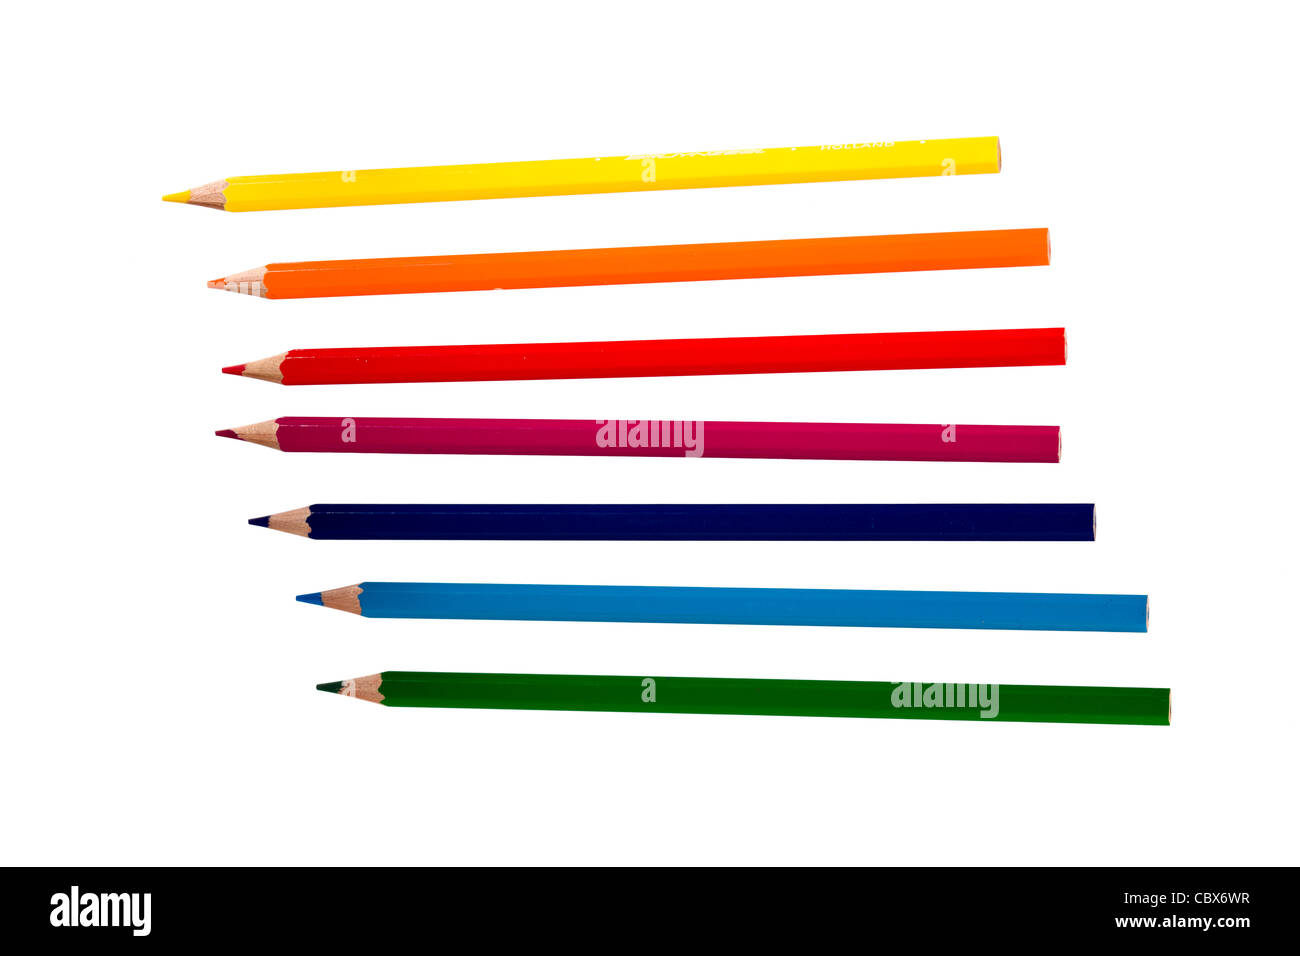 Color pencils isolated on white background - Stock Image